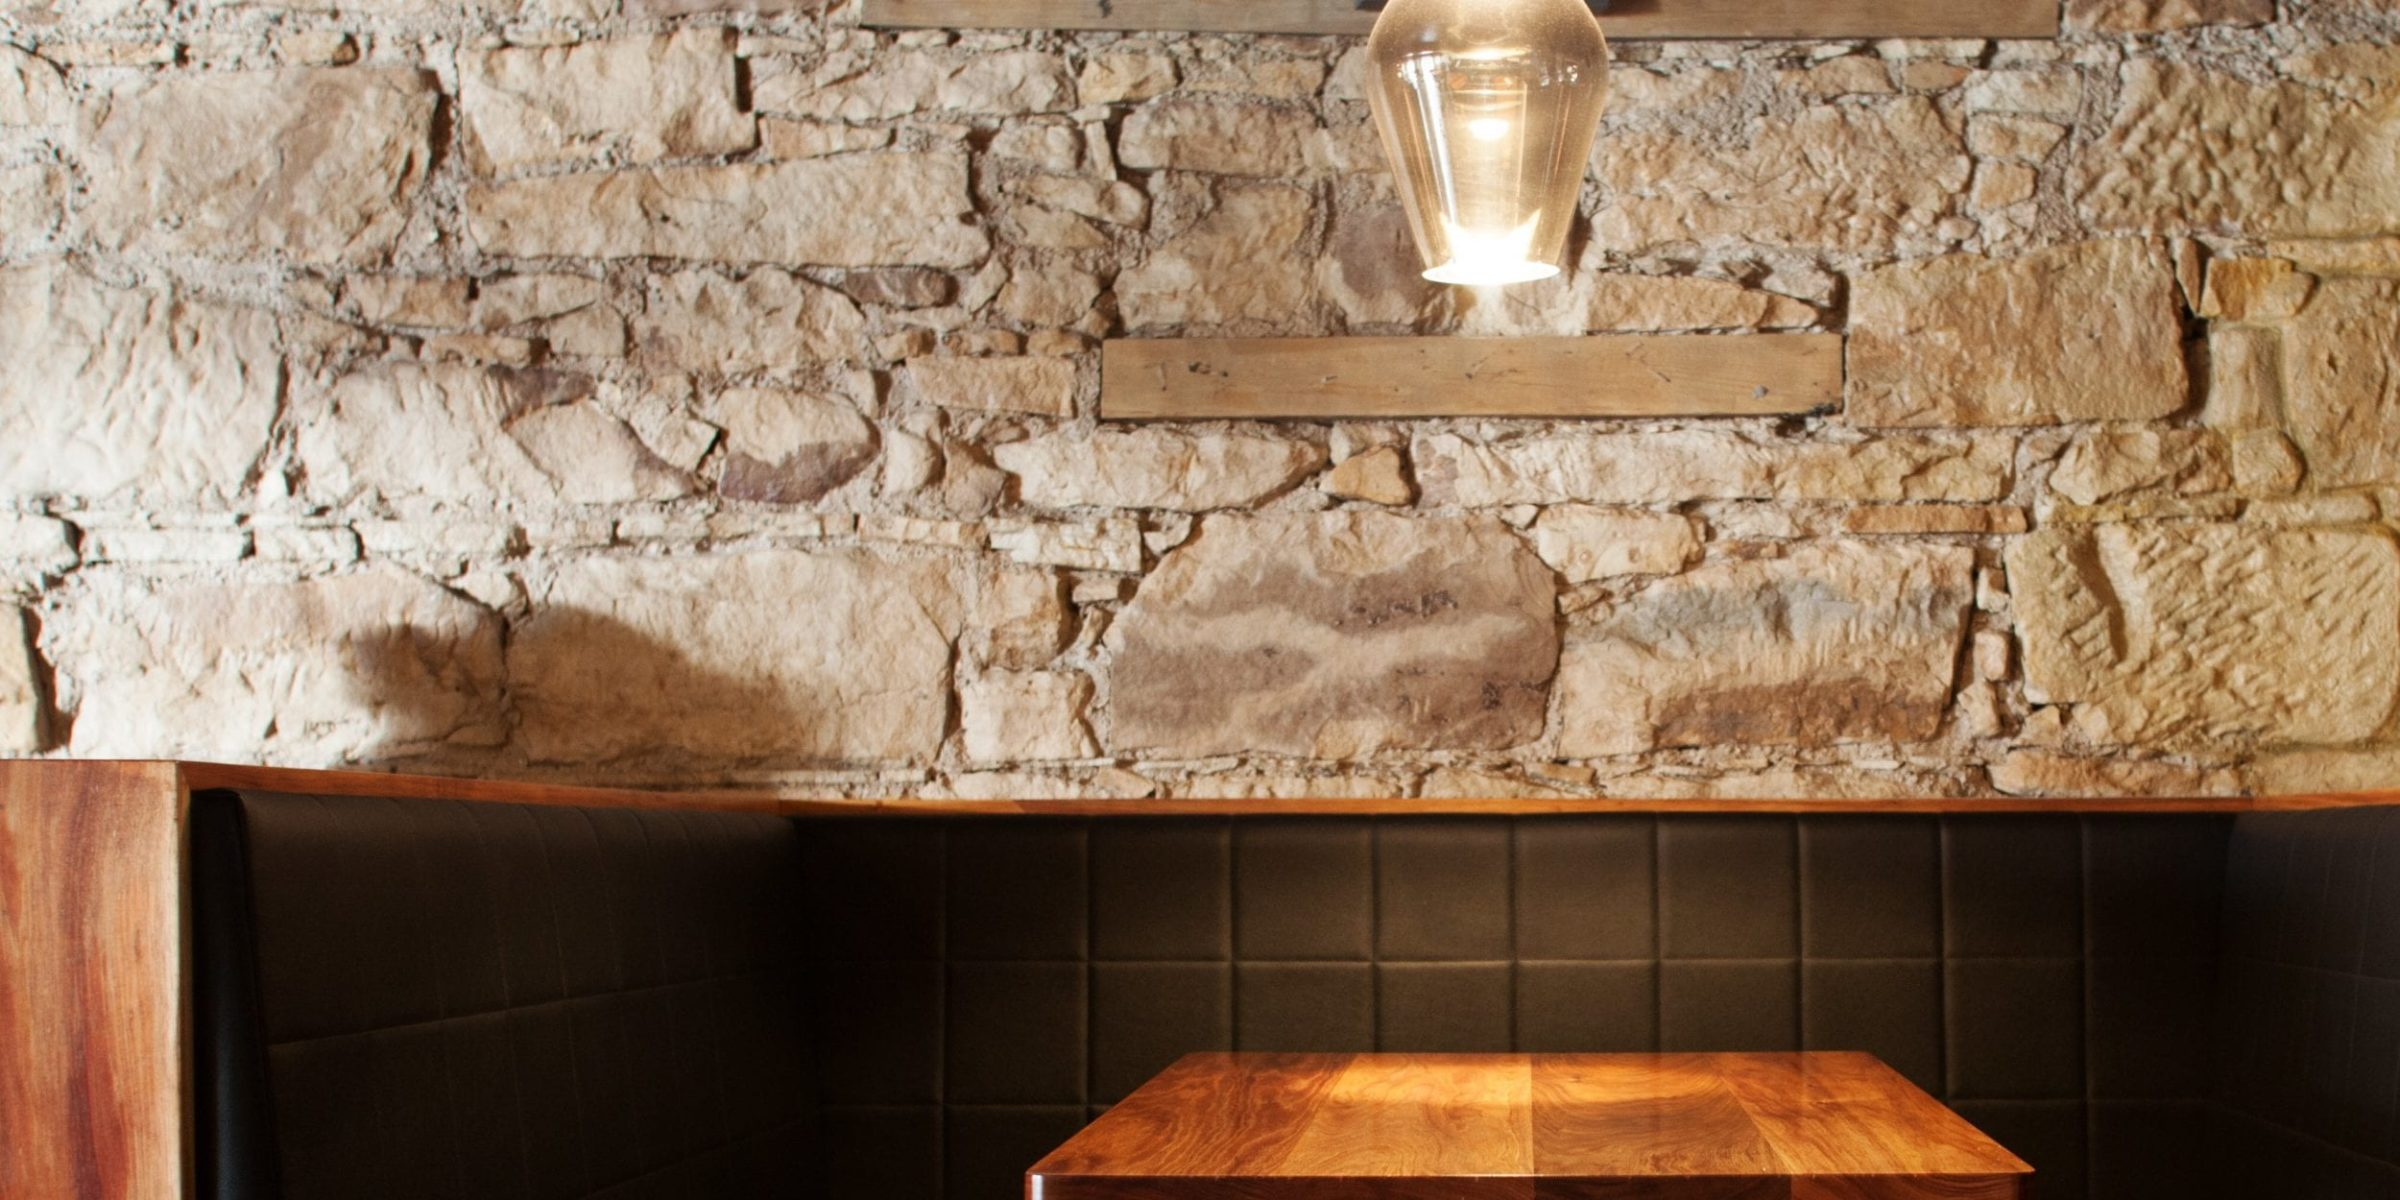 Blackwood timber tabletops provide a contrast to the convict sandstone walls